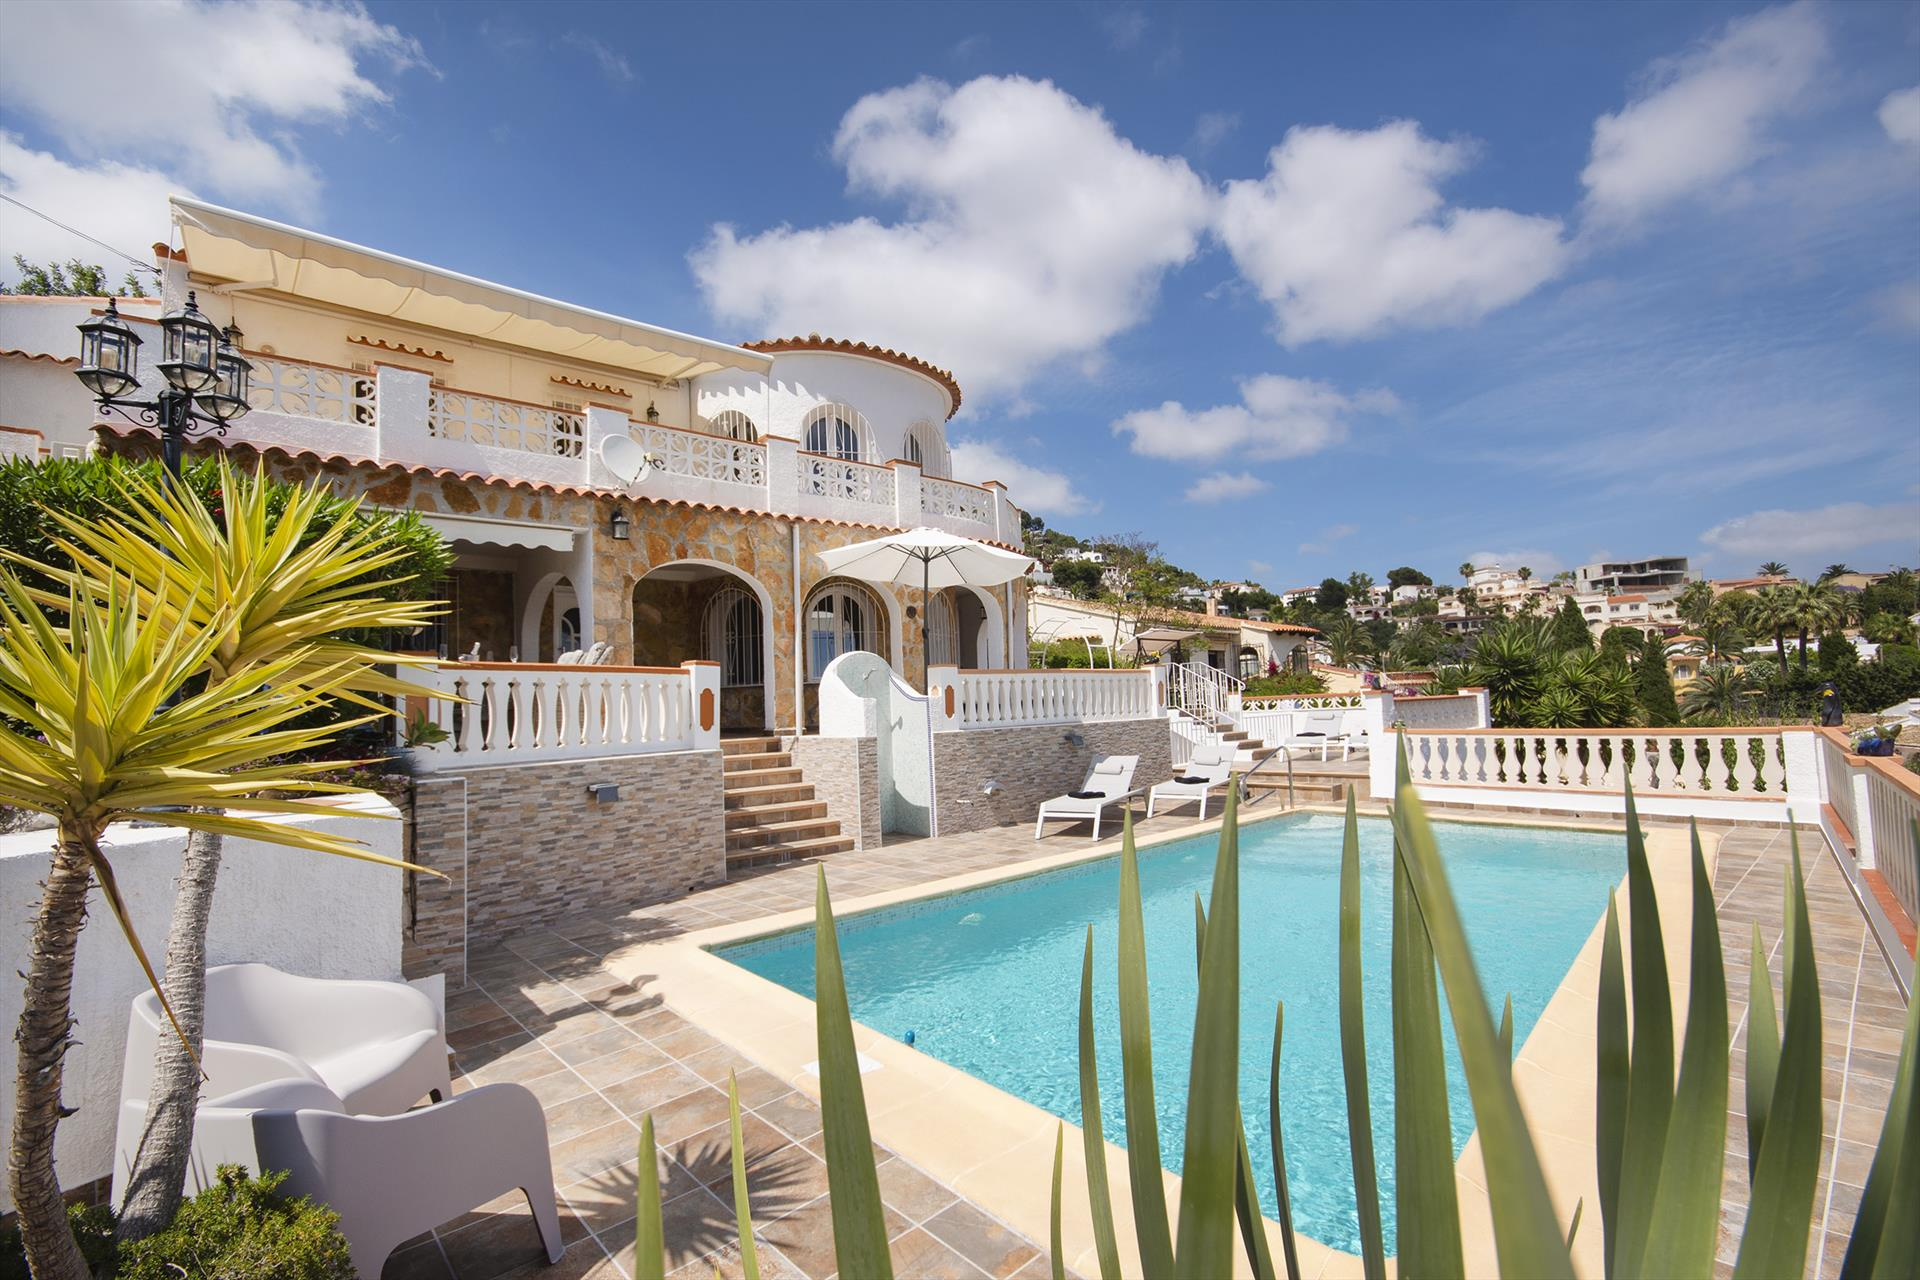 Mirador, Wonderful and cheerful villa in Benissa, on the Costa Blanca, Spain  with private pool for 4 persons.....